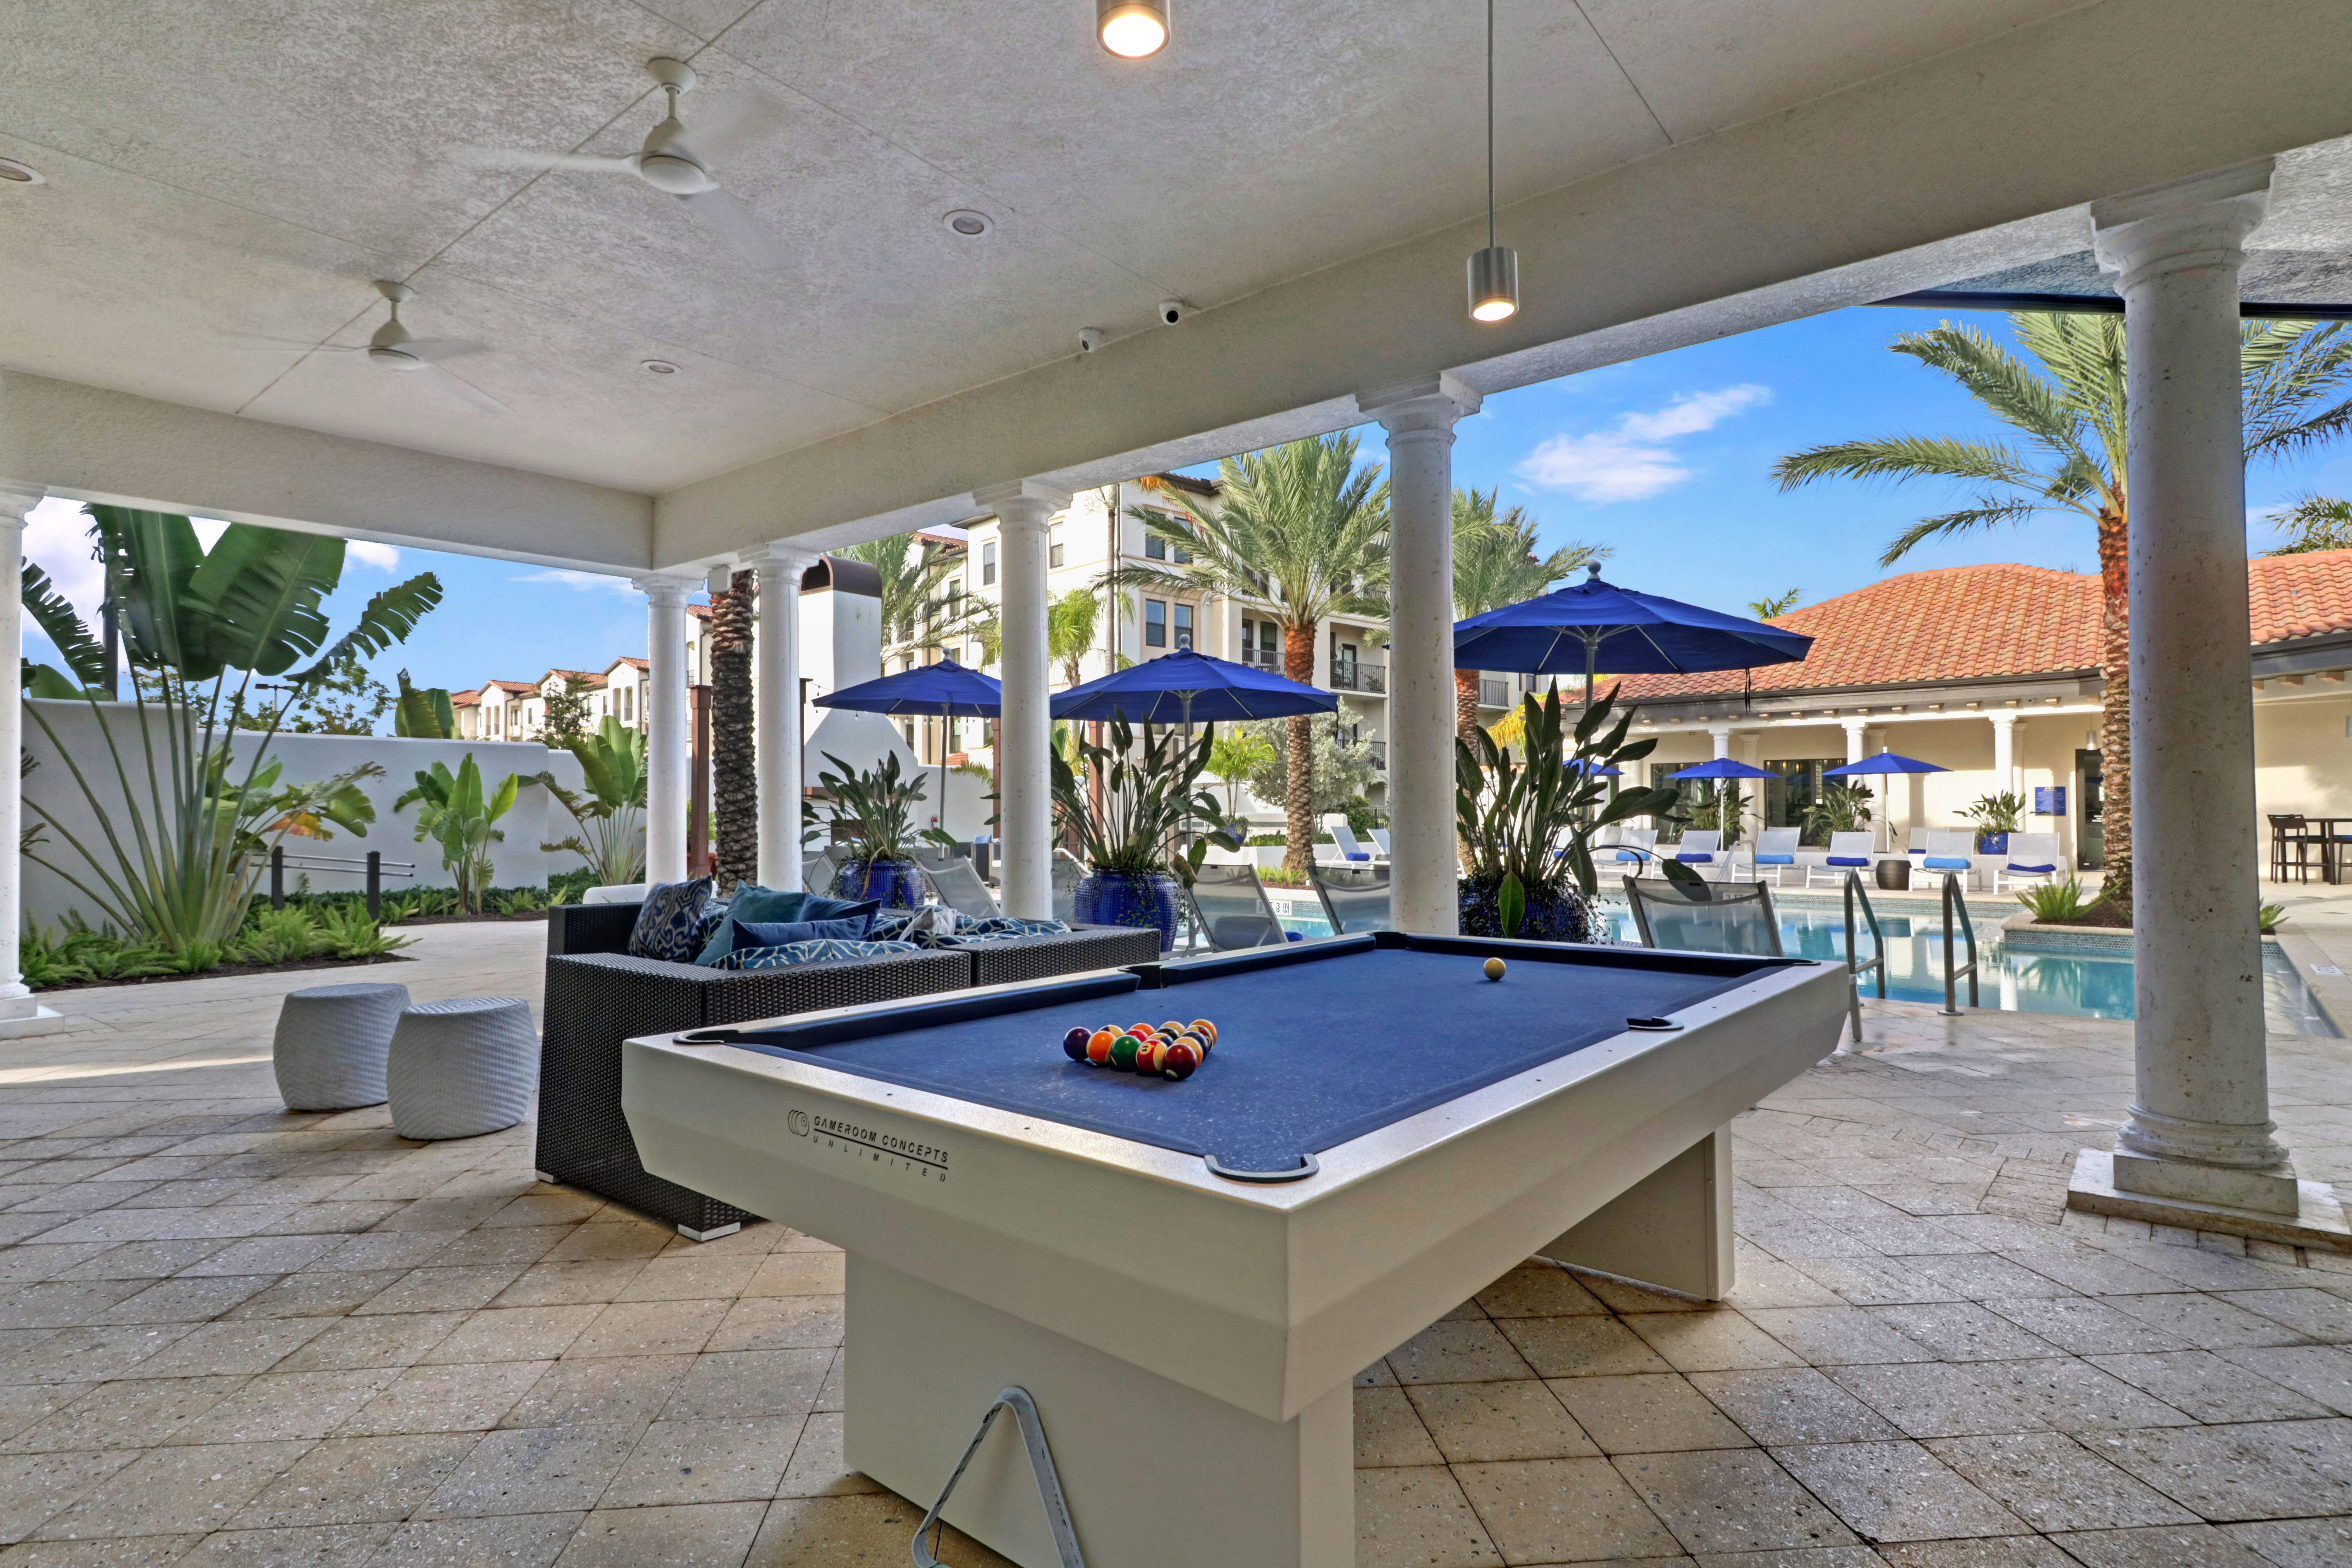 Billiards table located on outdoor patio space at Linden Pointe in Pompano Beach, Florida